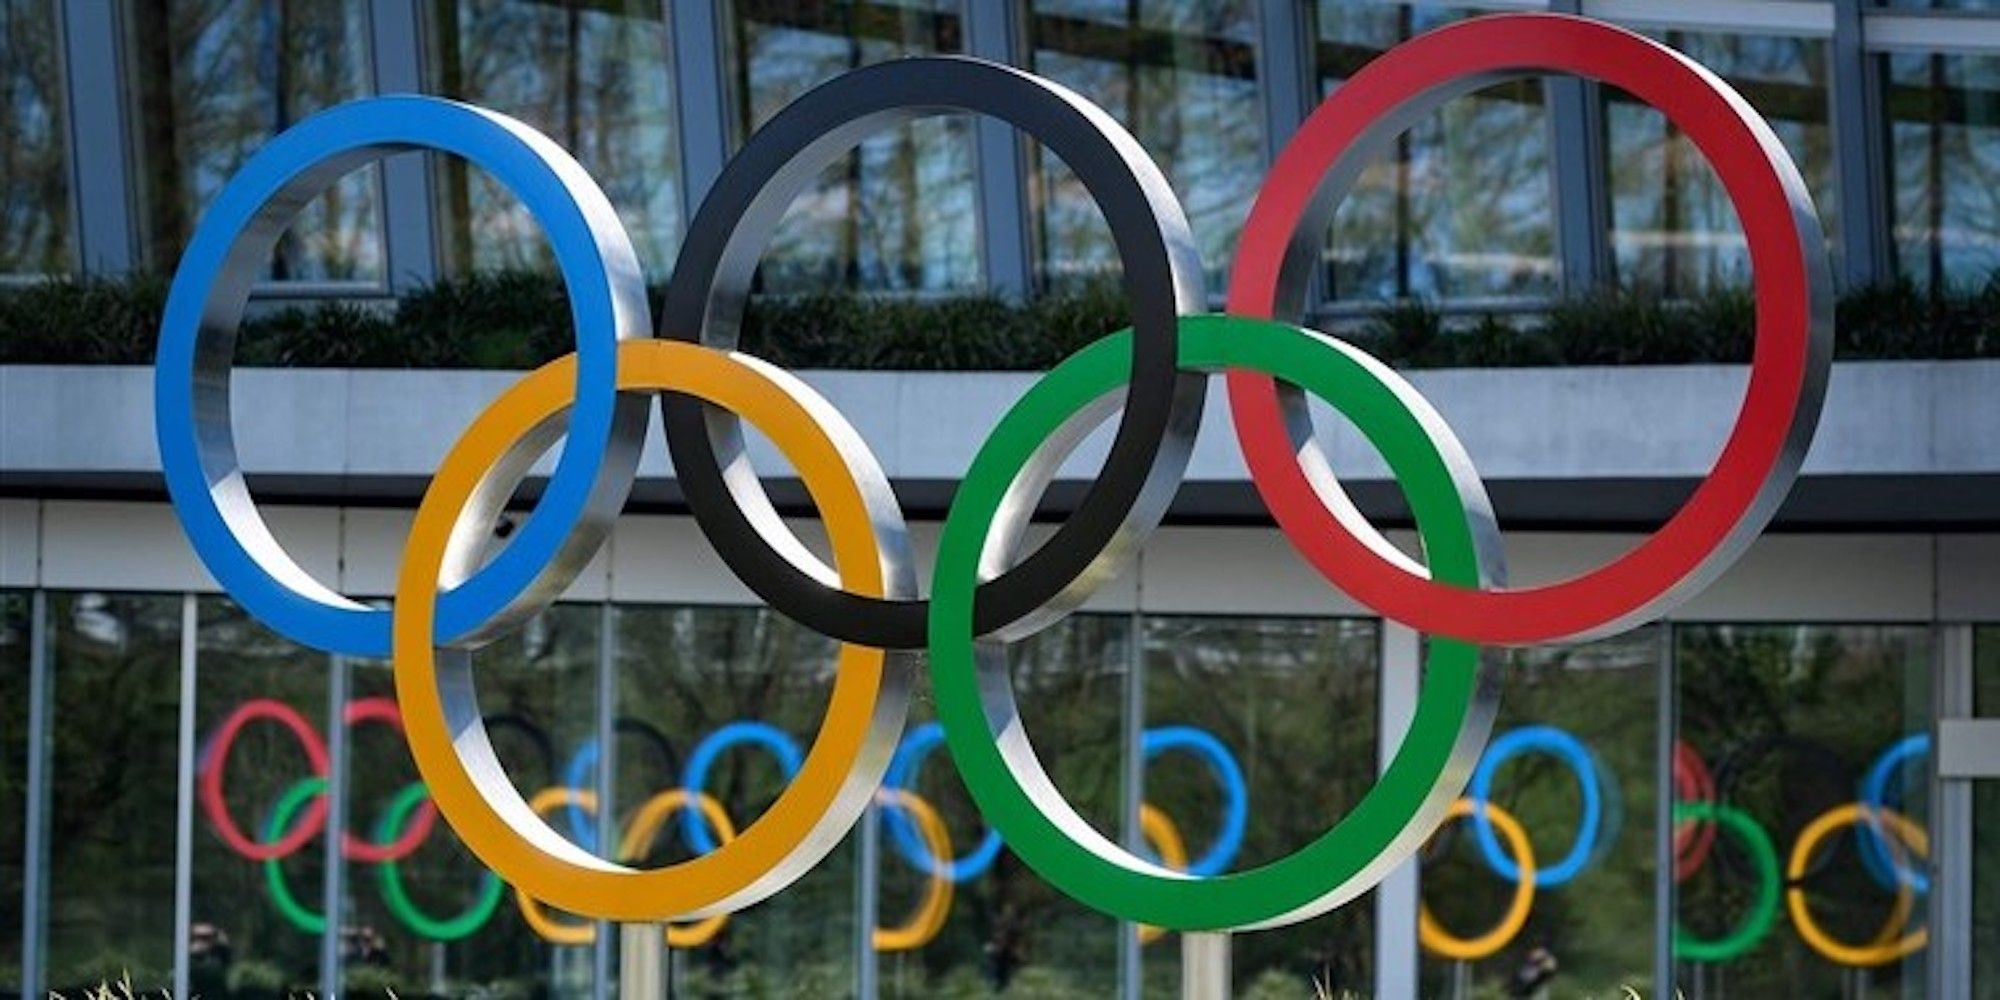 Tokyo Olympics Will Be Cancelled If Not Held In 2021